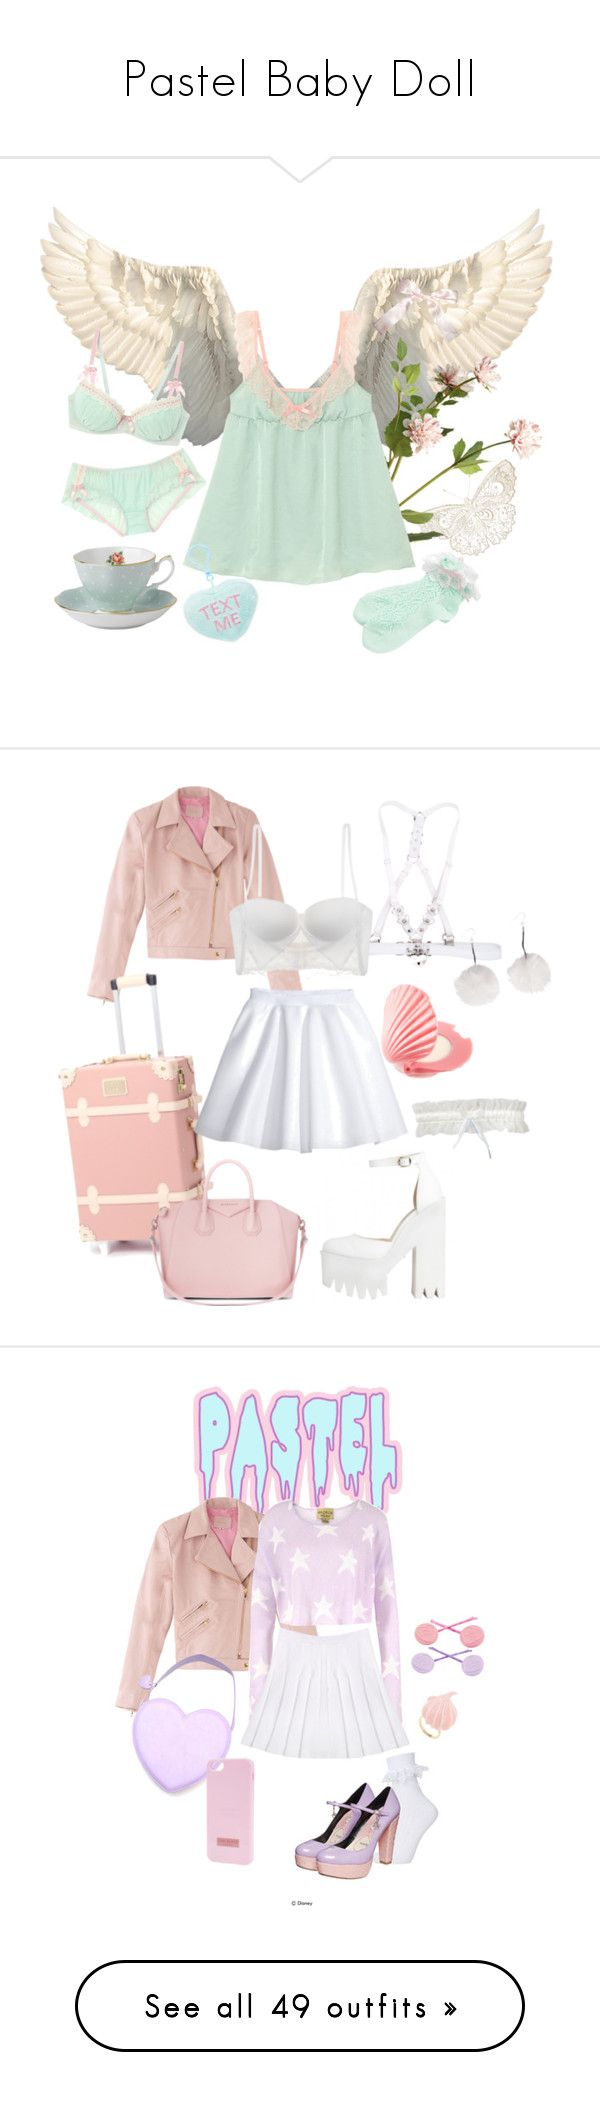 Pastel Baby Doll by softchinadoll on Polyvore featuring OKA, Royal Albert, claire's, La Perla, H&M, Untold, Givenchy, Wildfox, Topshop and Ted Baker.